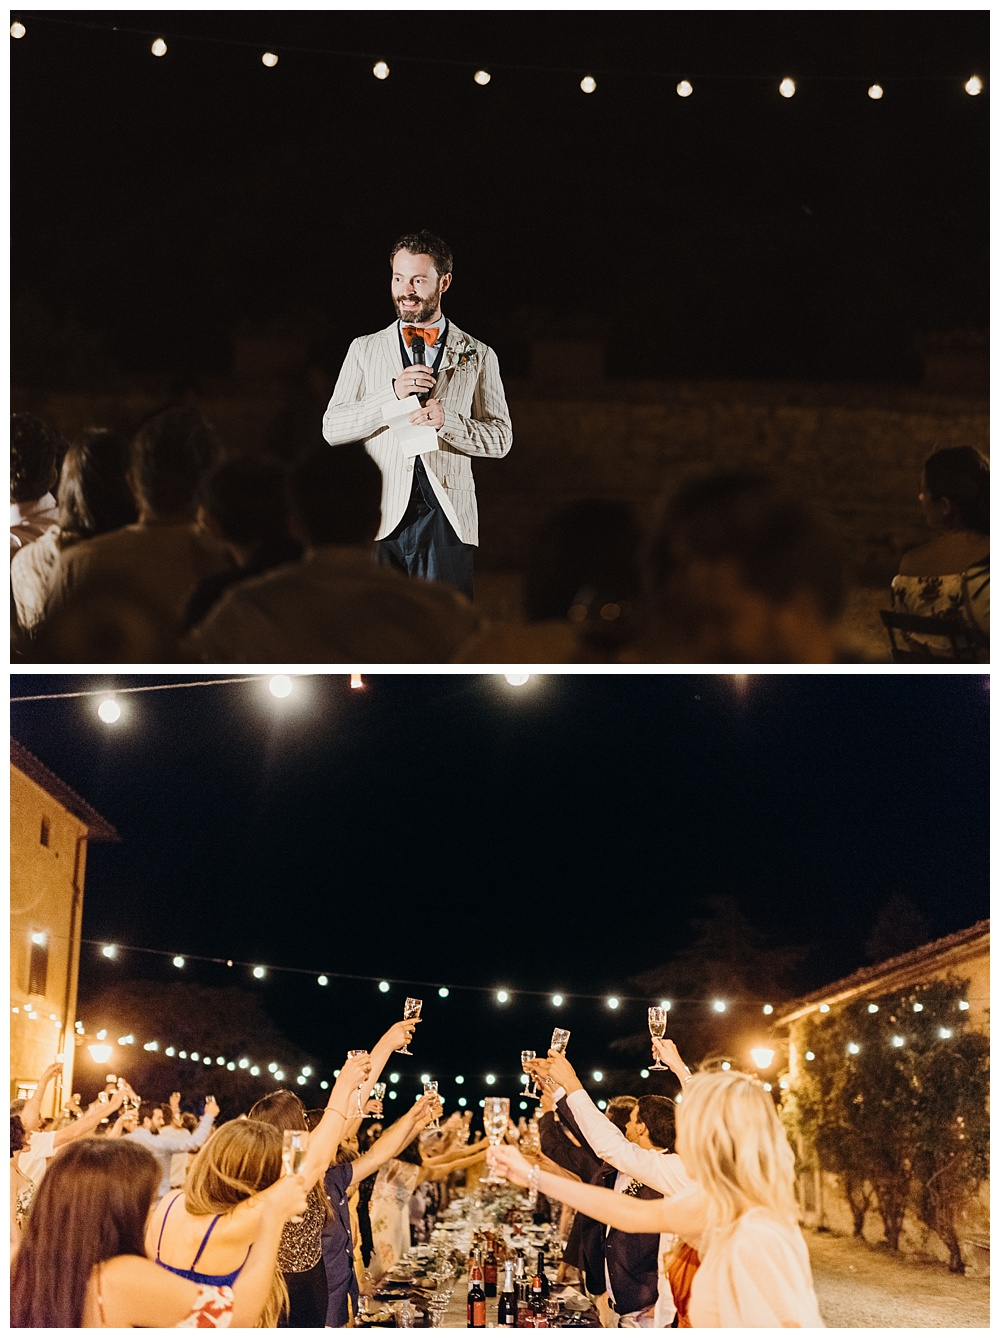 Groom's speech and toasts at italian wedding in tuscany